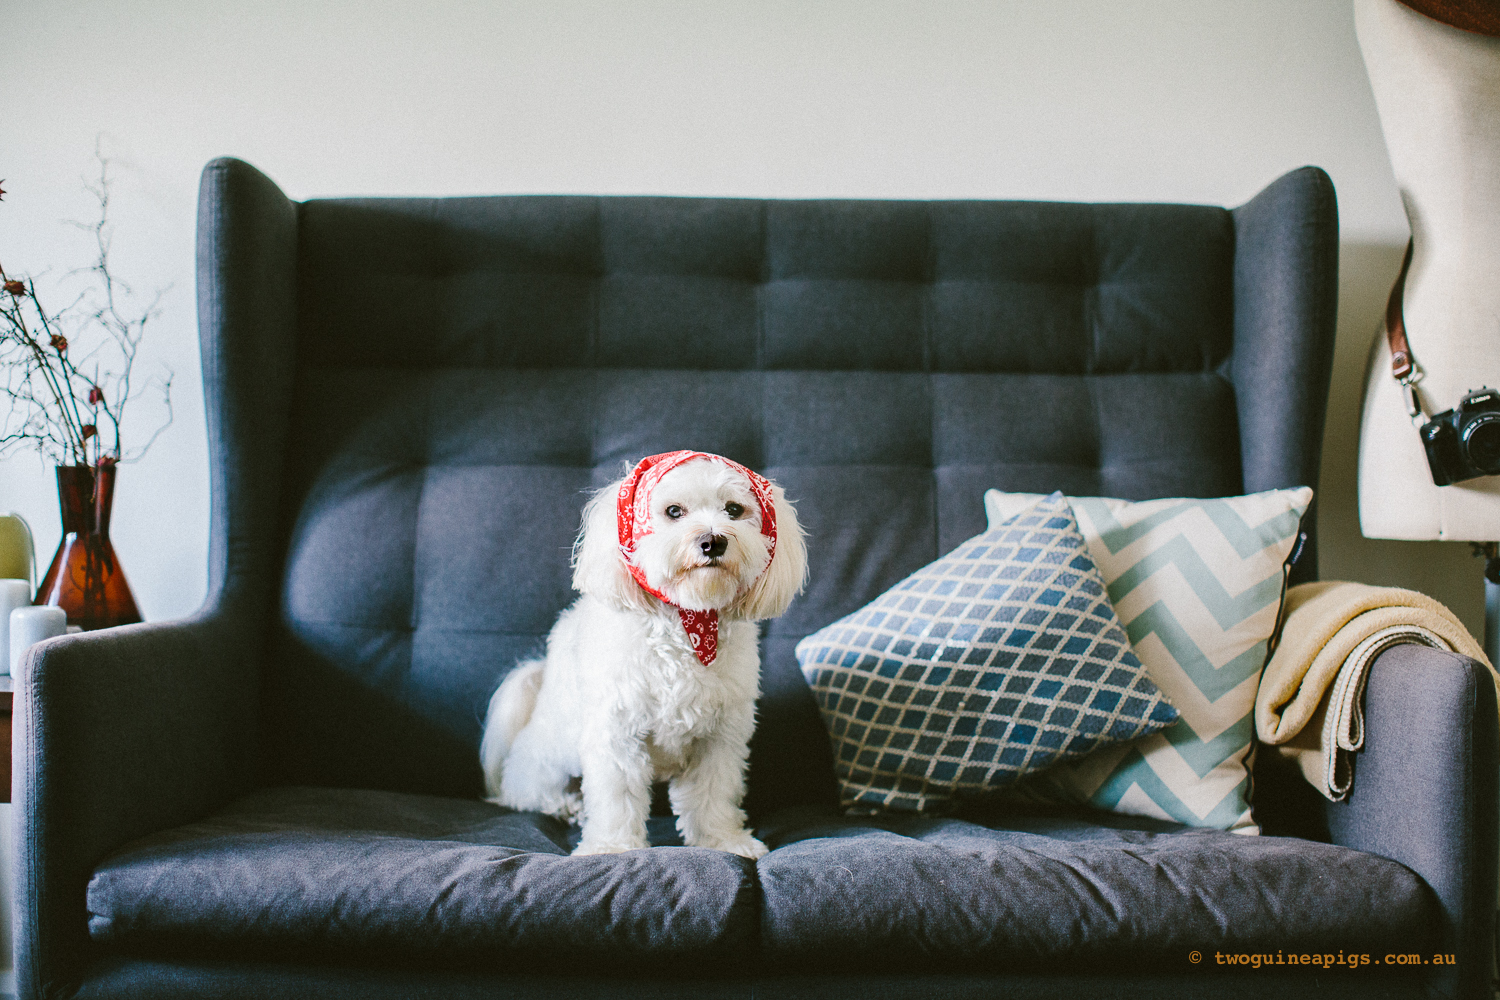 twoguineapigs_pet_photography_dalston_havanese_holiday_day7_dog